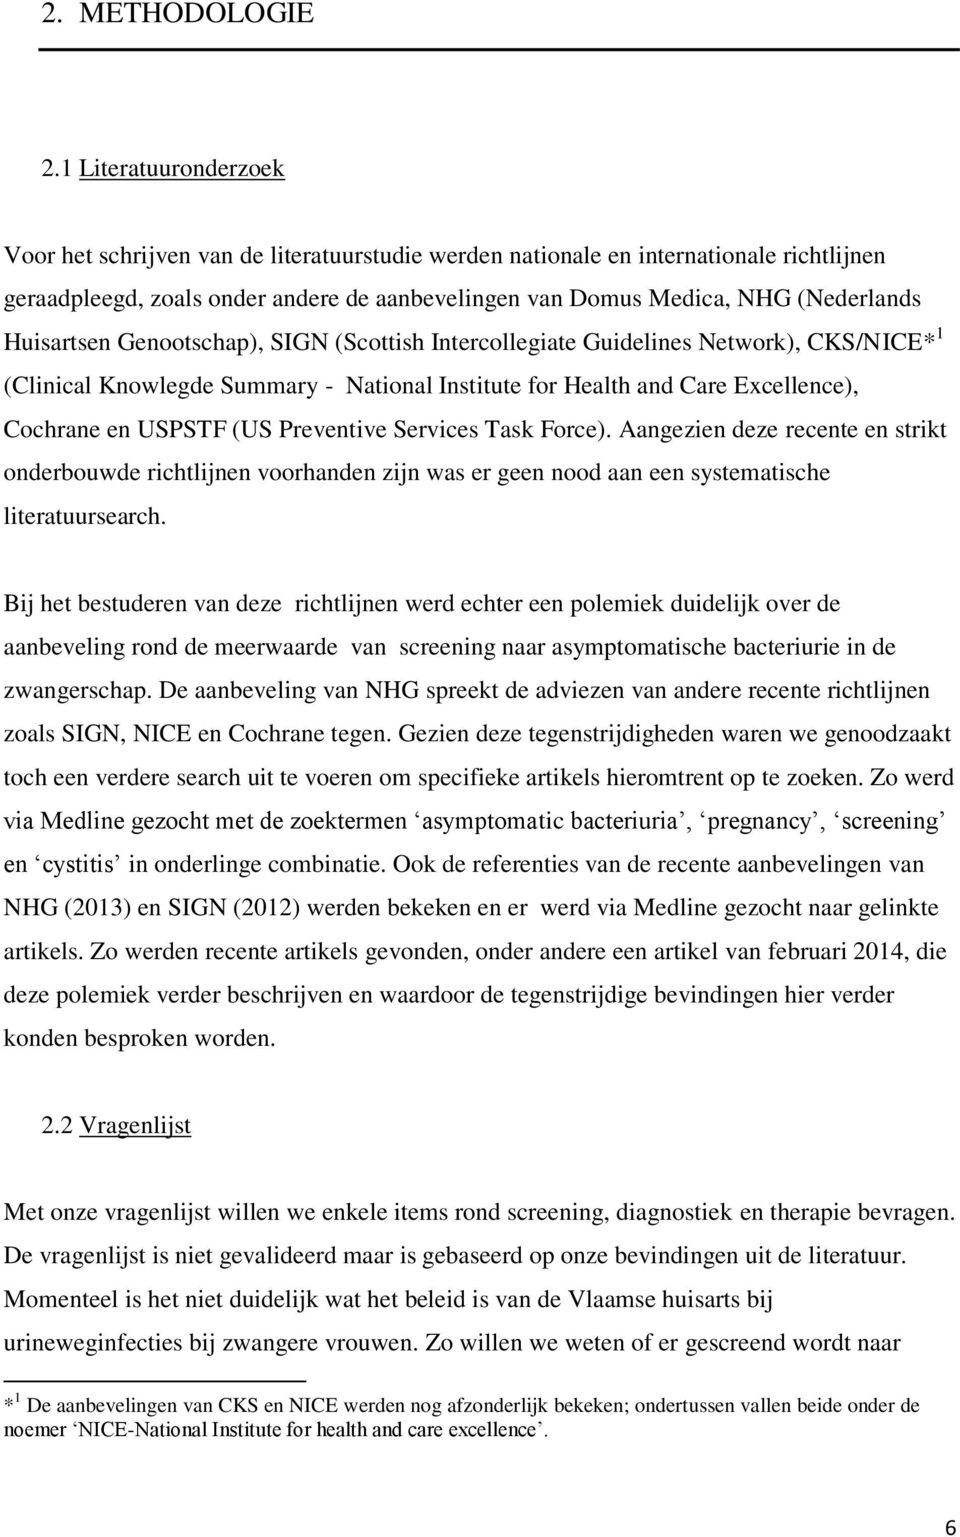 Huisartsen Genootschap), SIGN (Scottish Intercollegiate Guidelines Network), CKS/NICE* 1 (Clinical Knowlegde Summary - National Institute for Health and Care Excellence), Cochrane en USPSTF (US